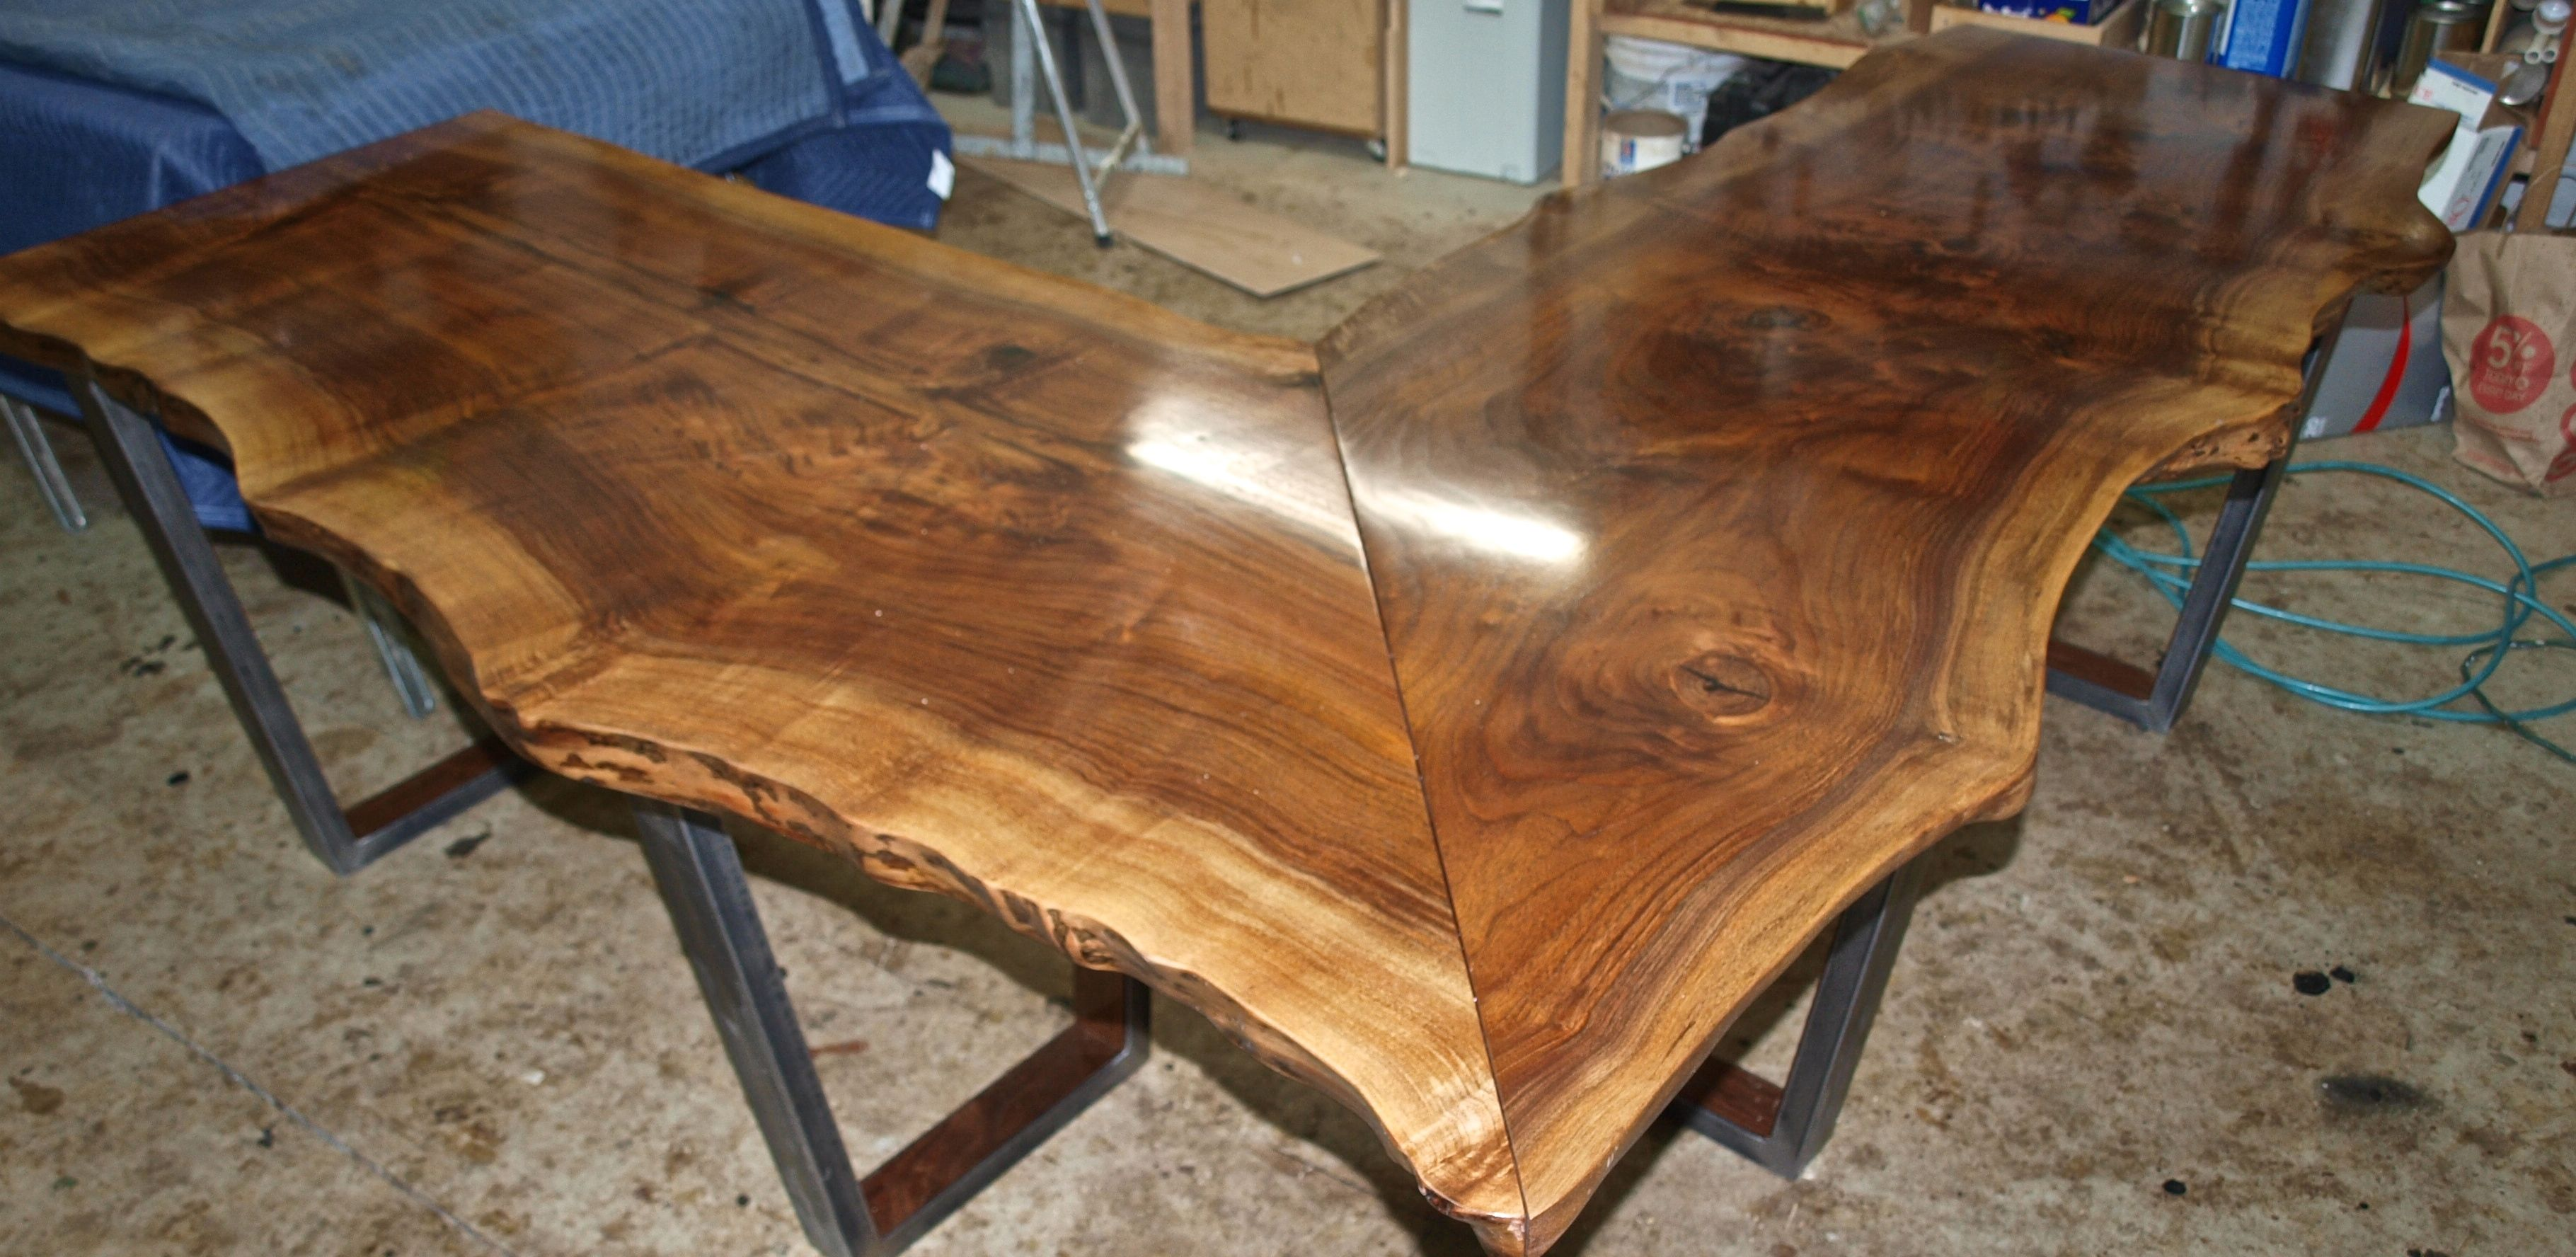 Buy a Custom Made Live Edge Walnut L Shaped Desk made to  : 117261915846 from www.custommade.com size 3640 x 1776 jpeg 685kB